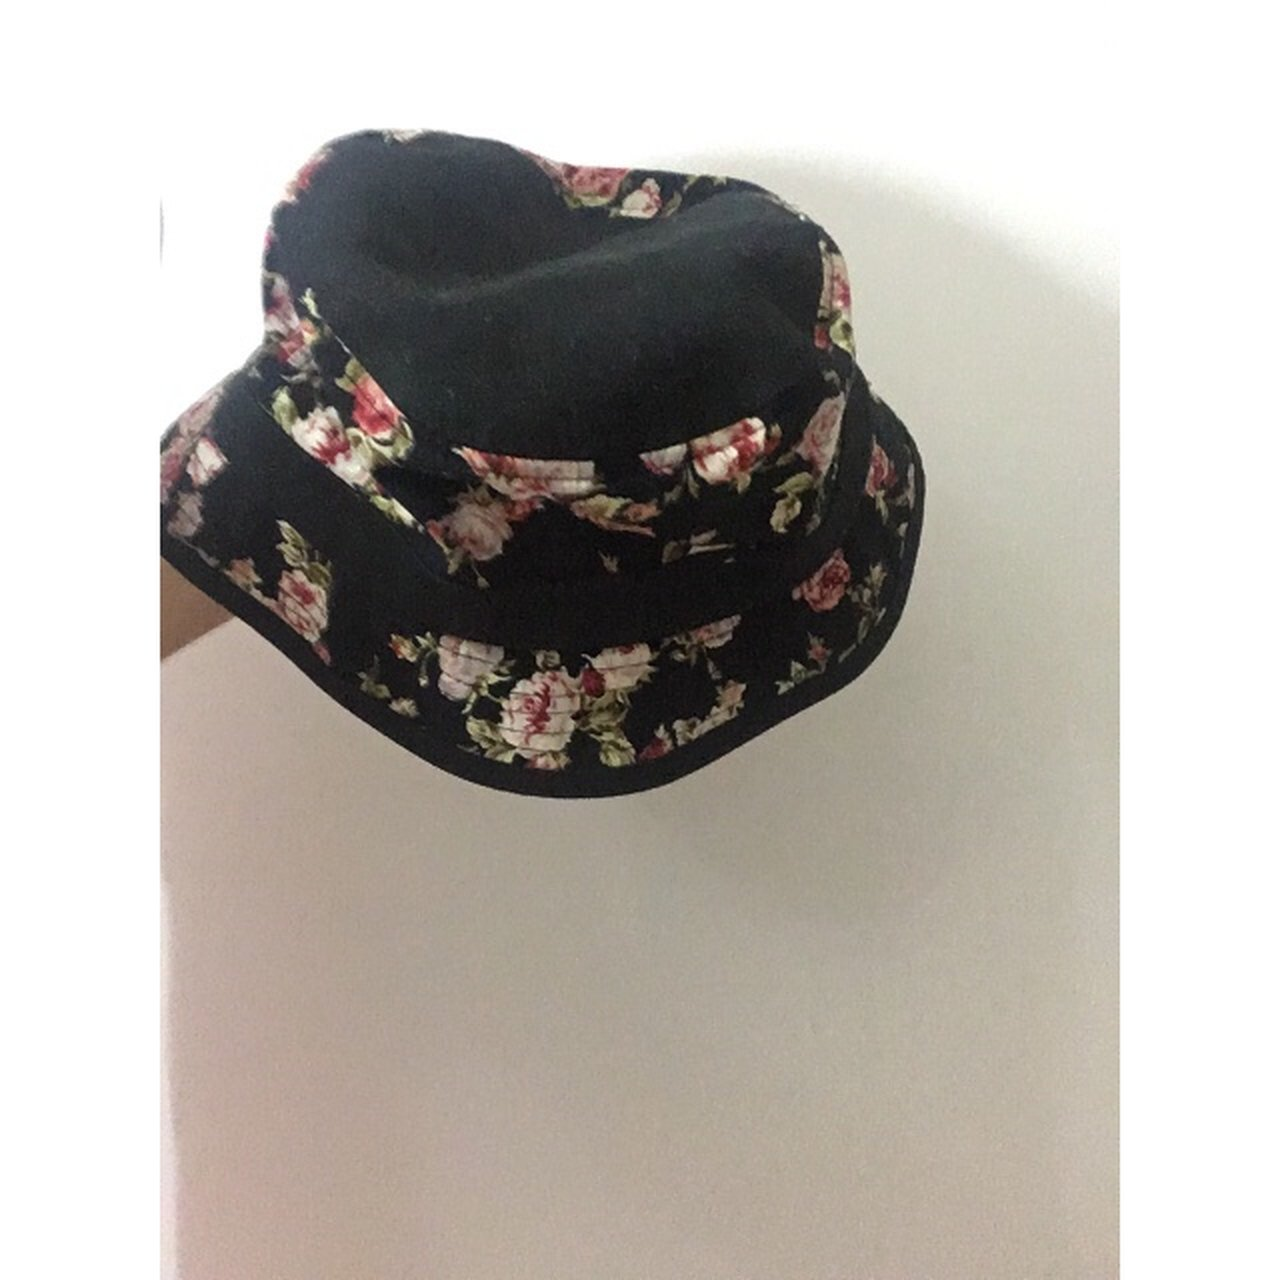 c63940b02ad Primitive floral rose bucket hat. Small white marks. Nothing - Depop